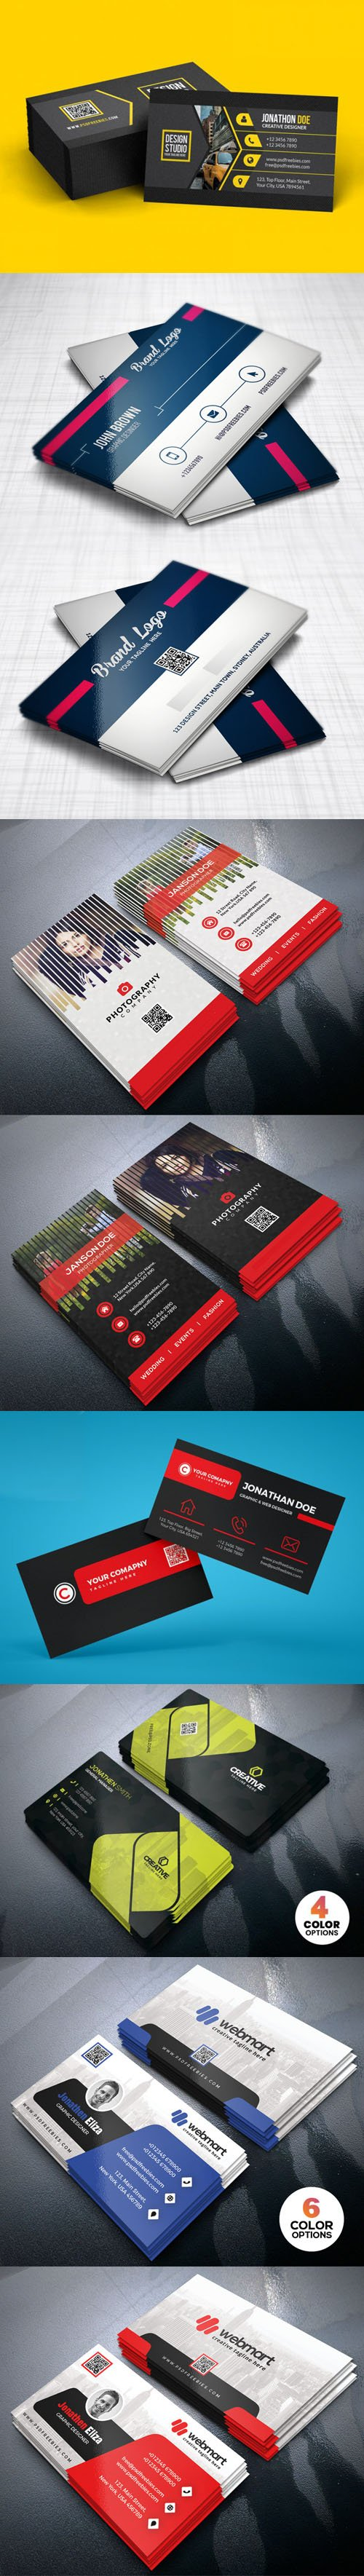 16 Multipurpose Business Cards PSD Templates Collection